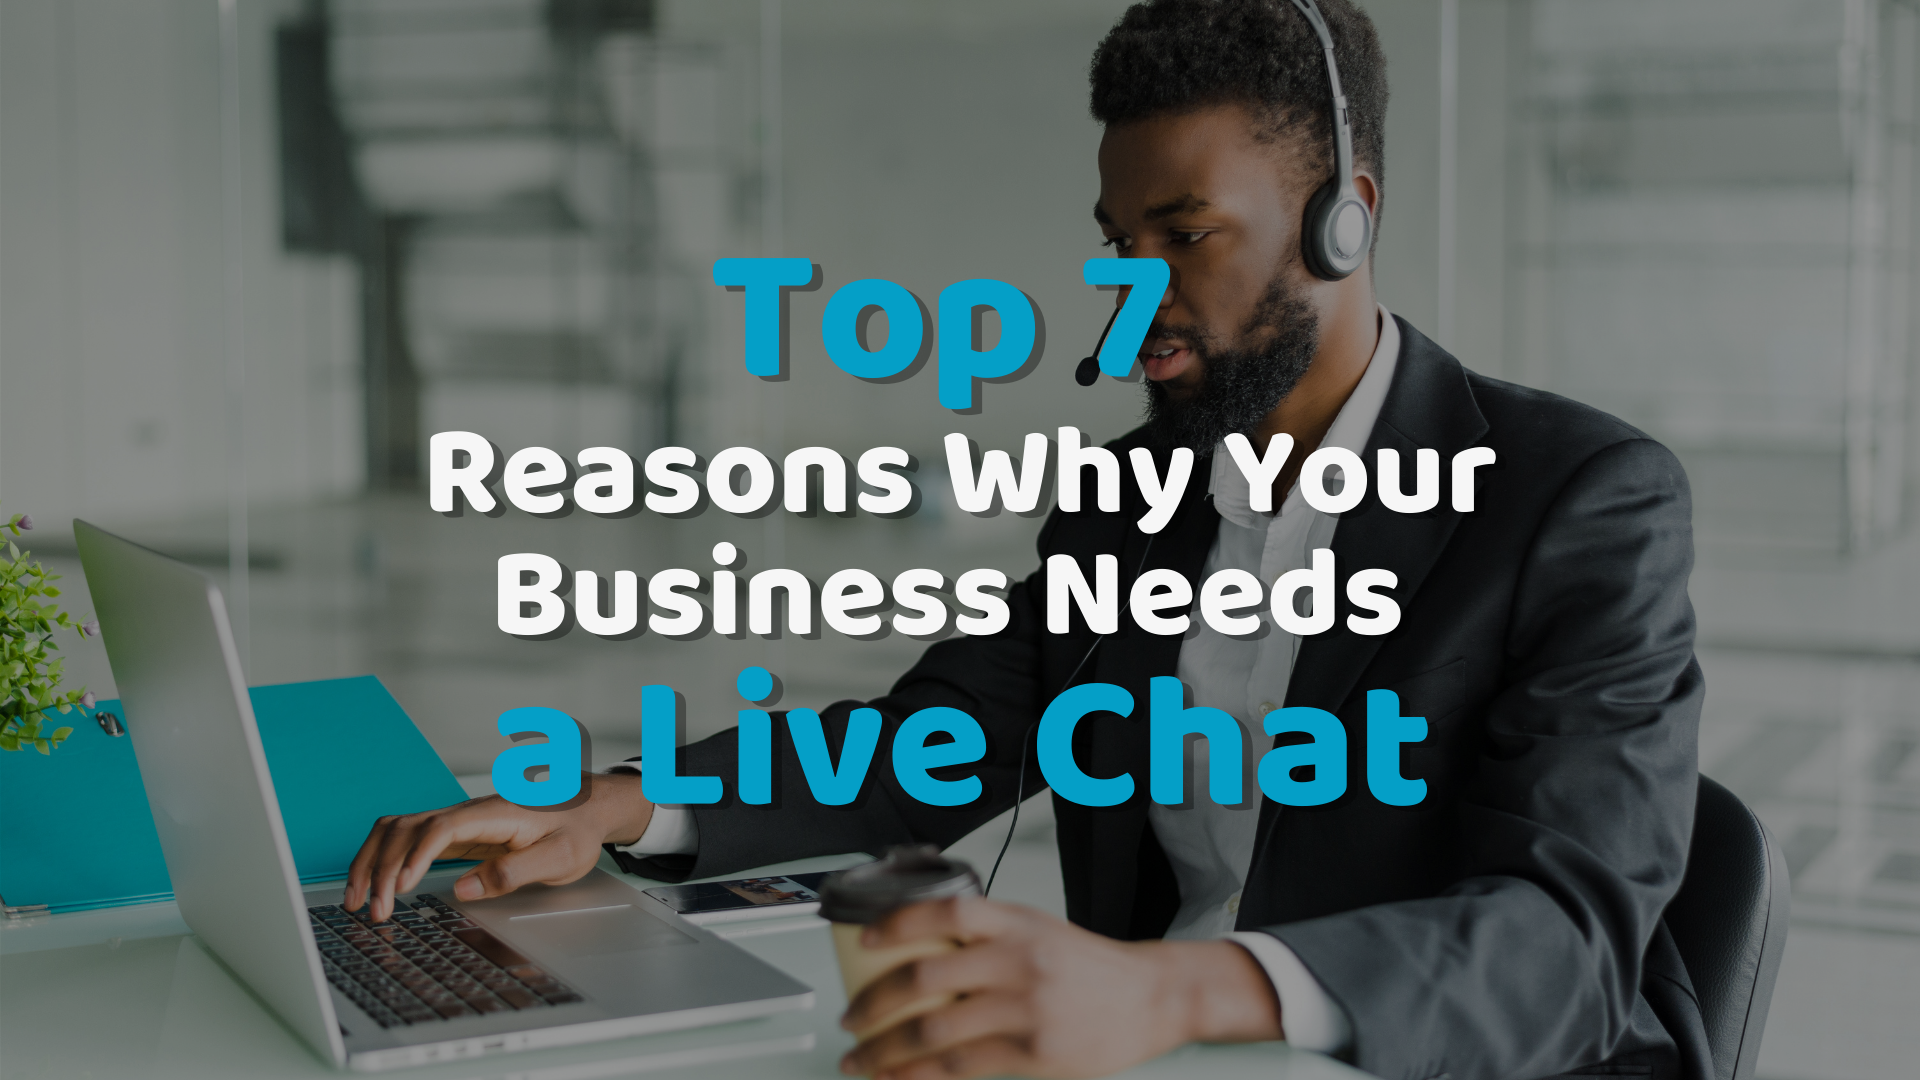 Top 7 reasons why your business needs a Live Chat in 2020